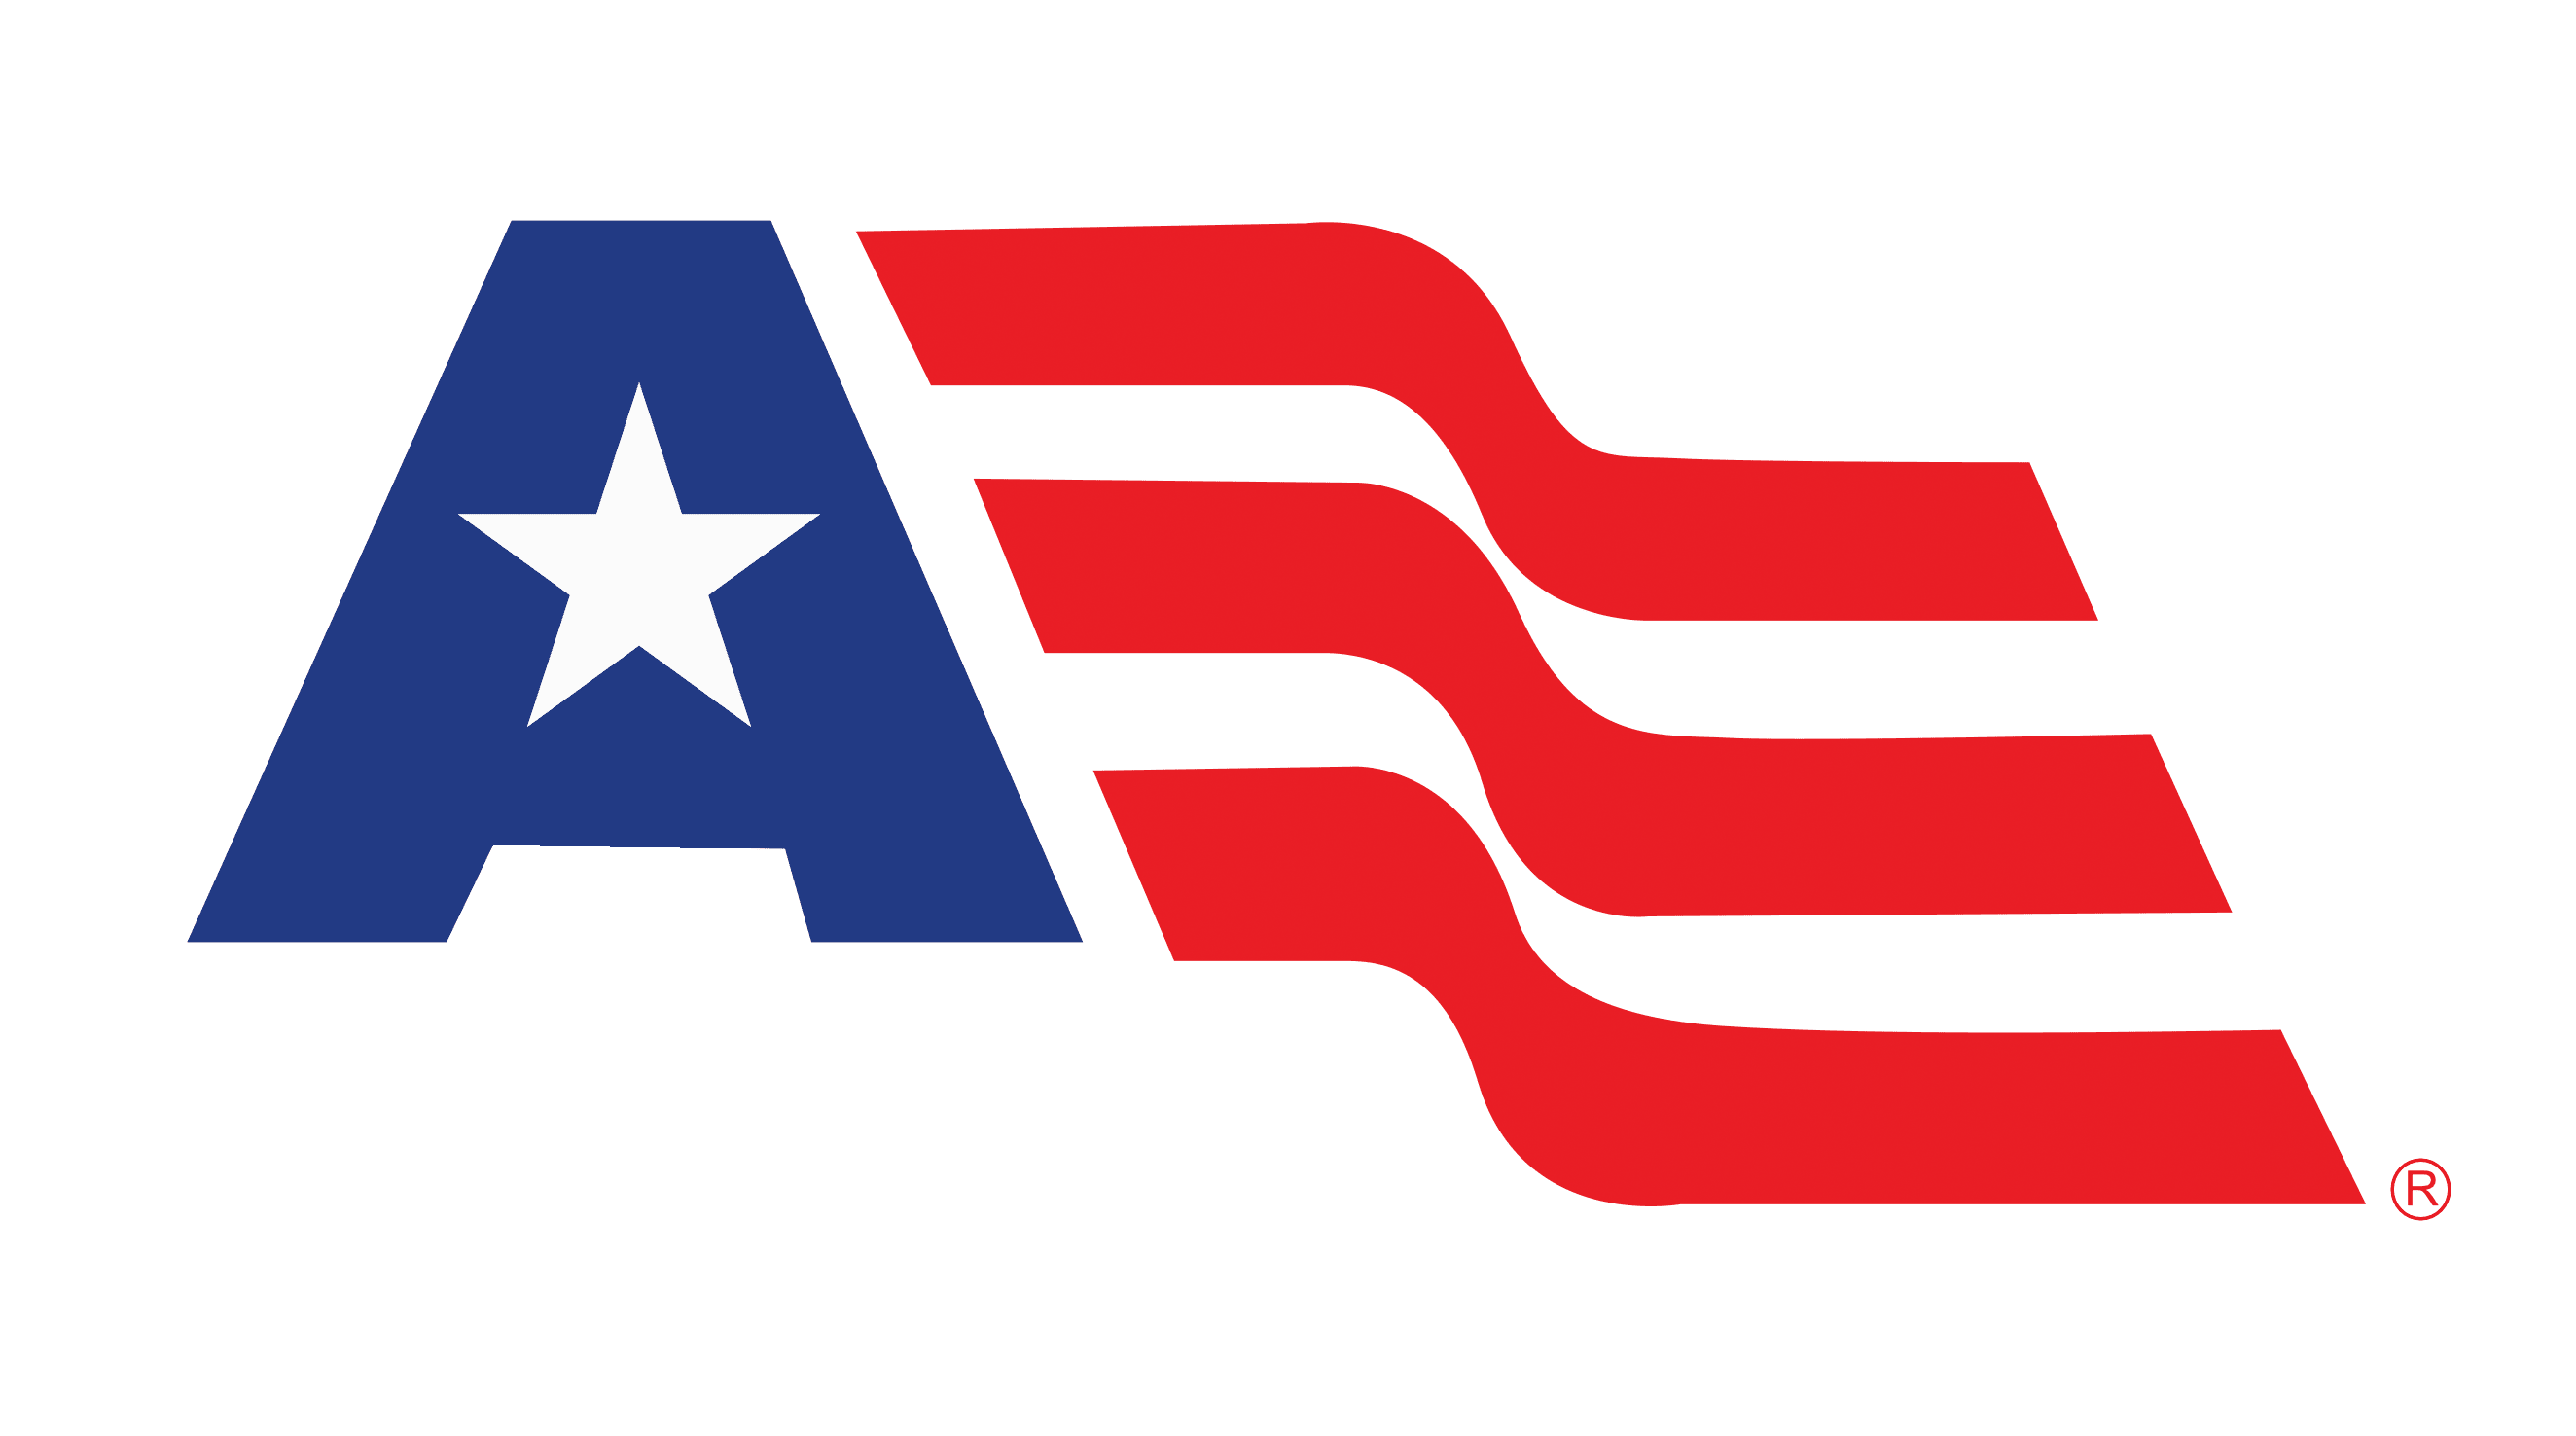 An American flag letter A icon from A-American Self Storage in Honolulu, Hawaii